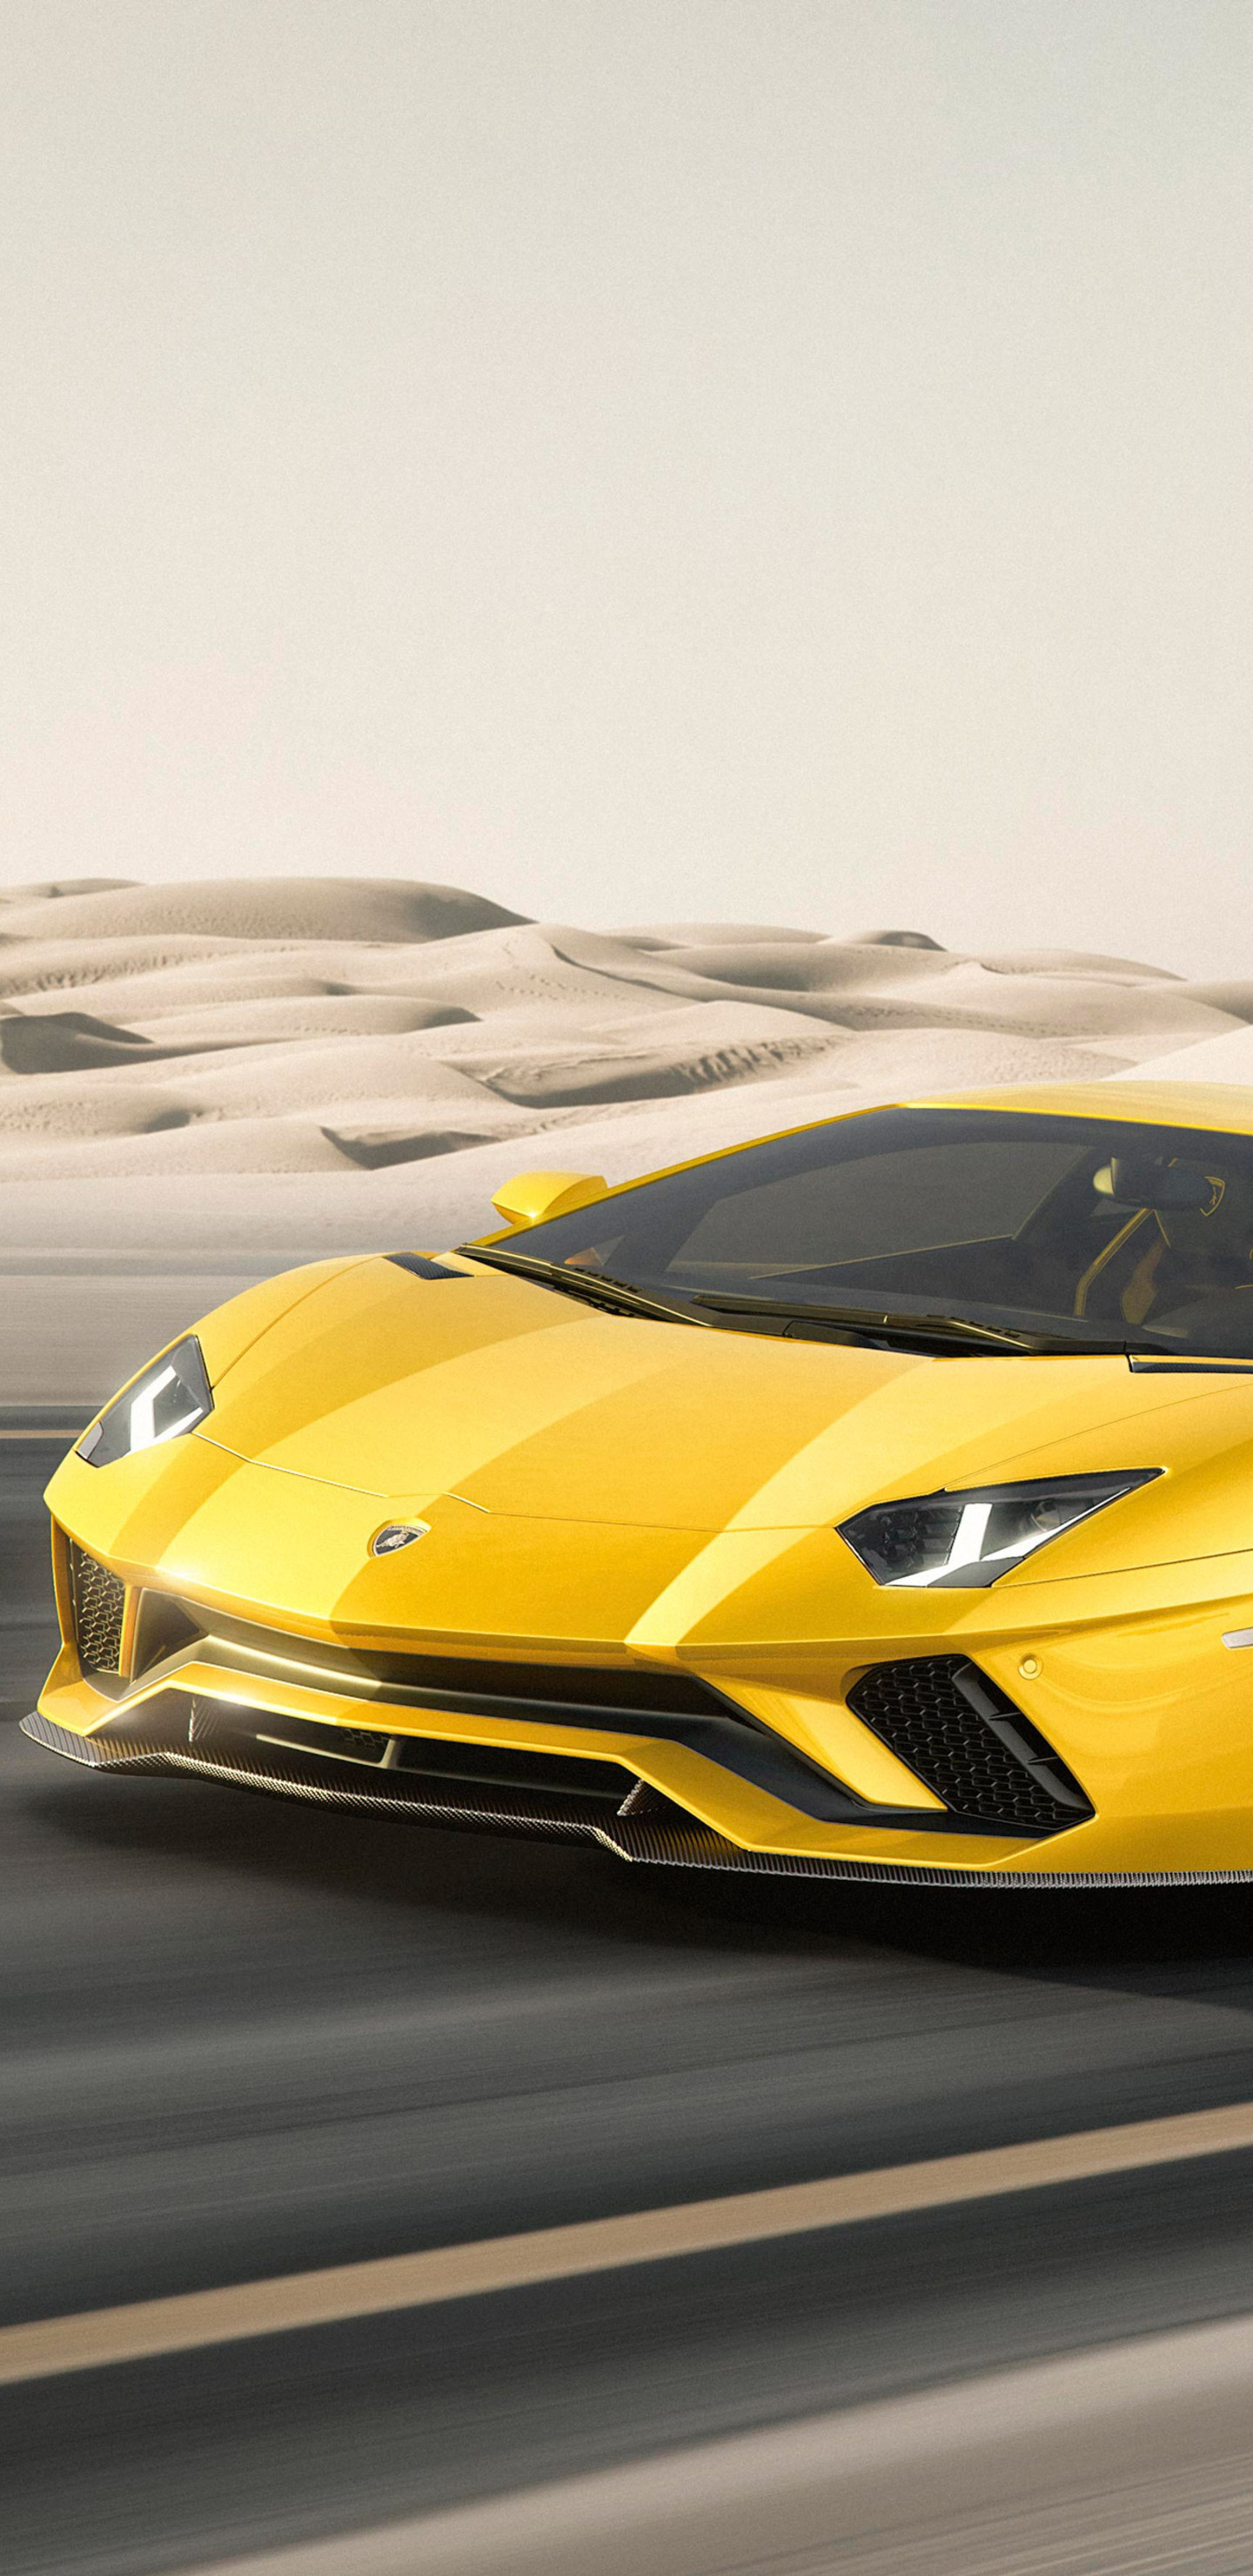 Lamborghini car note